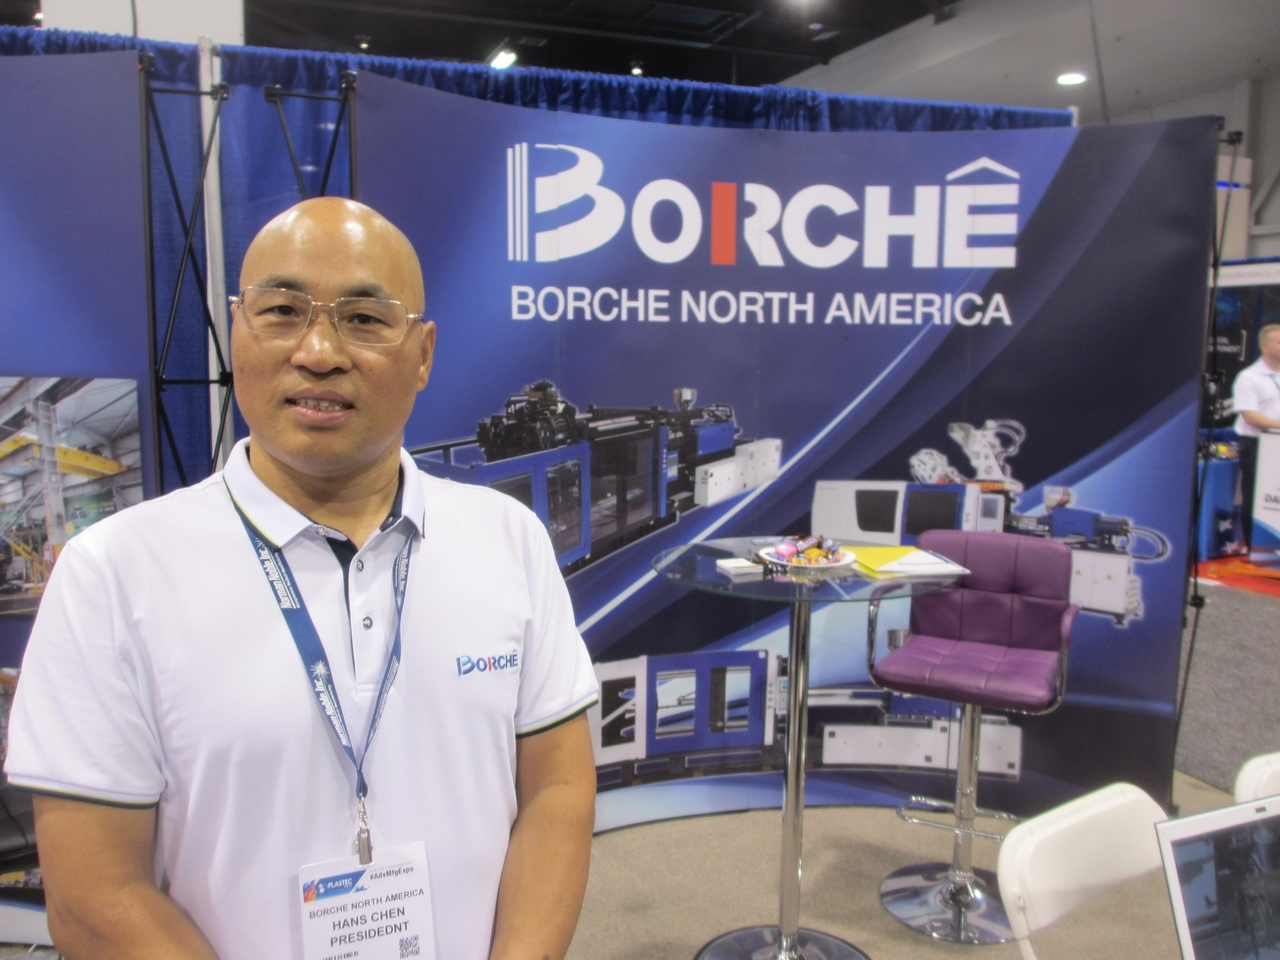 Borche headquarters sets up in North America